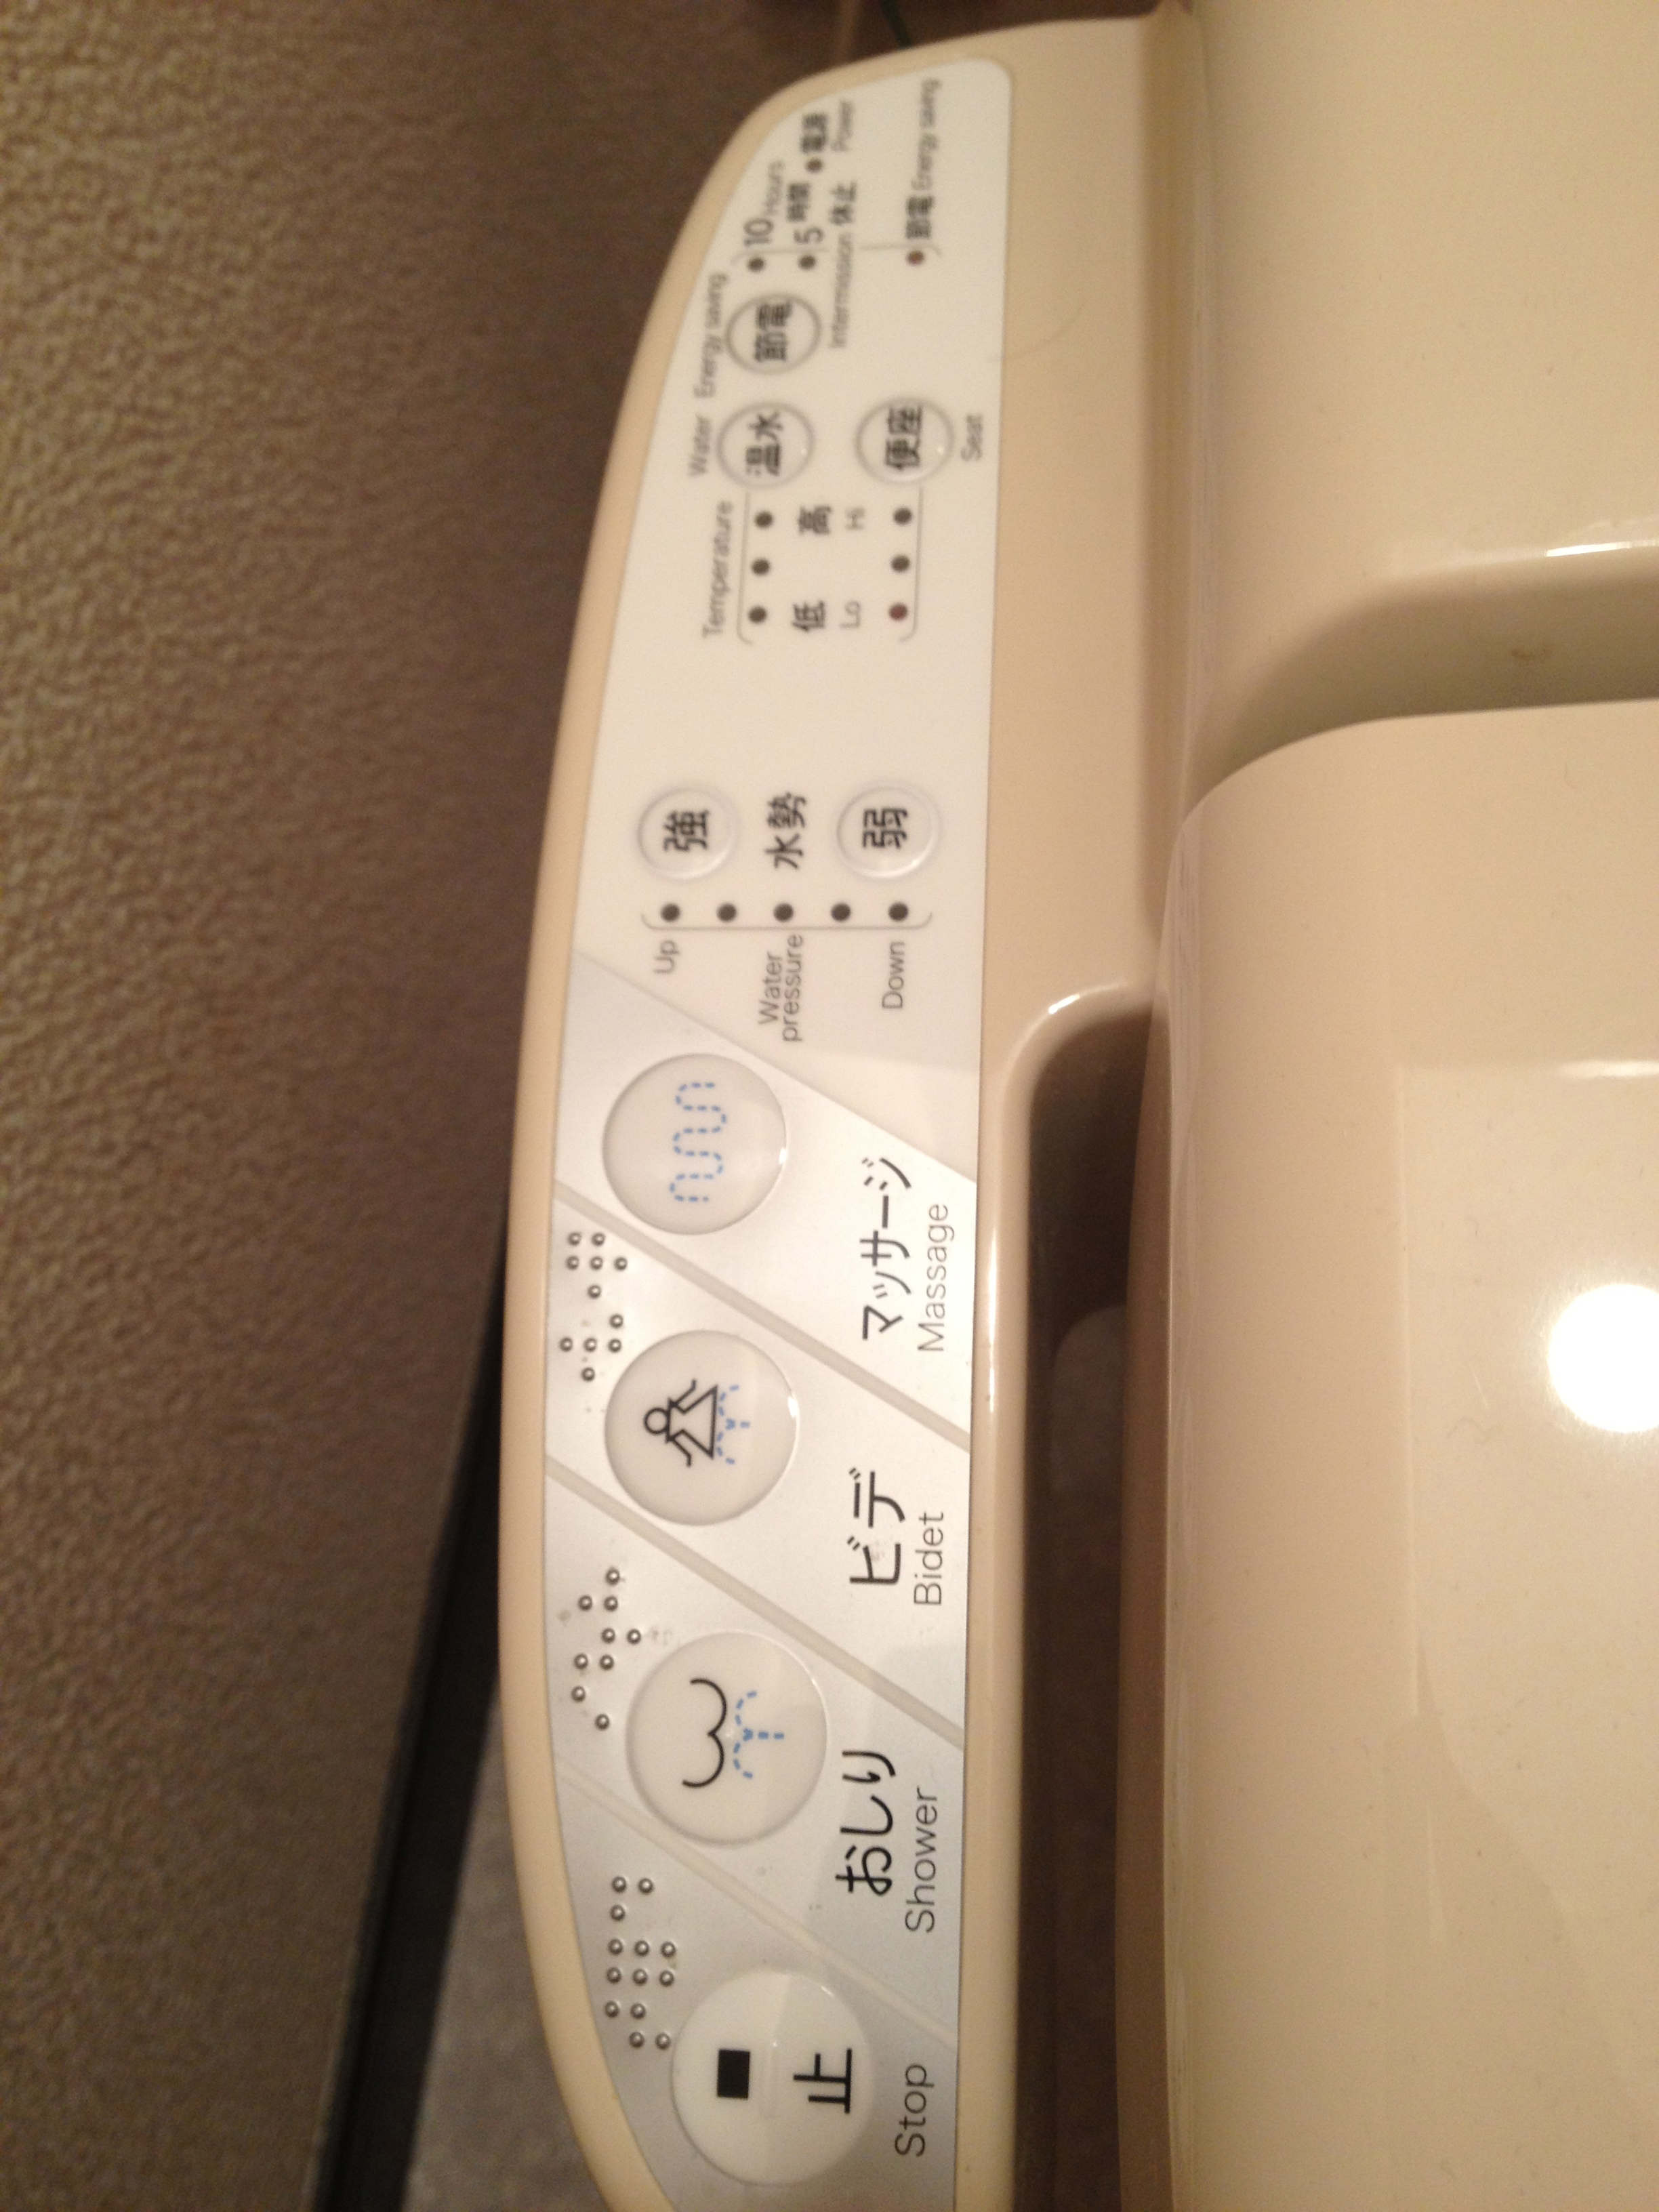 Japanese Toilet Control Panel Toilets  From Squatting To Robotic IntrovertJapan